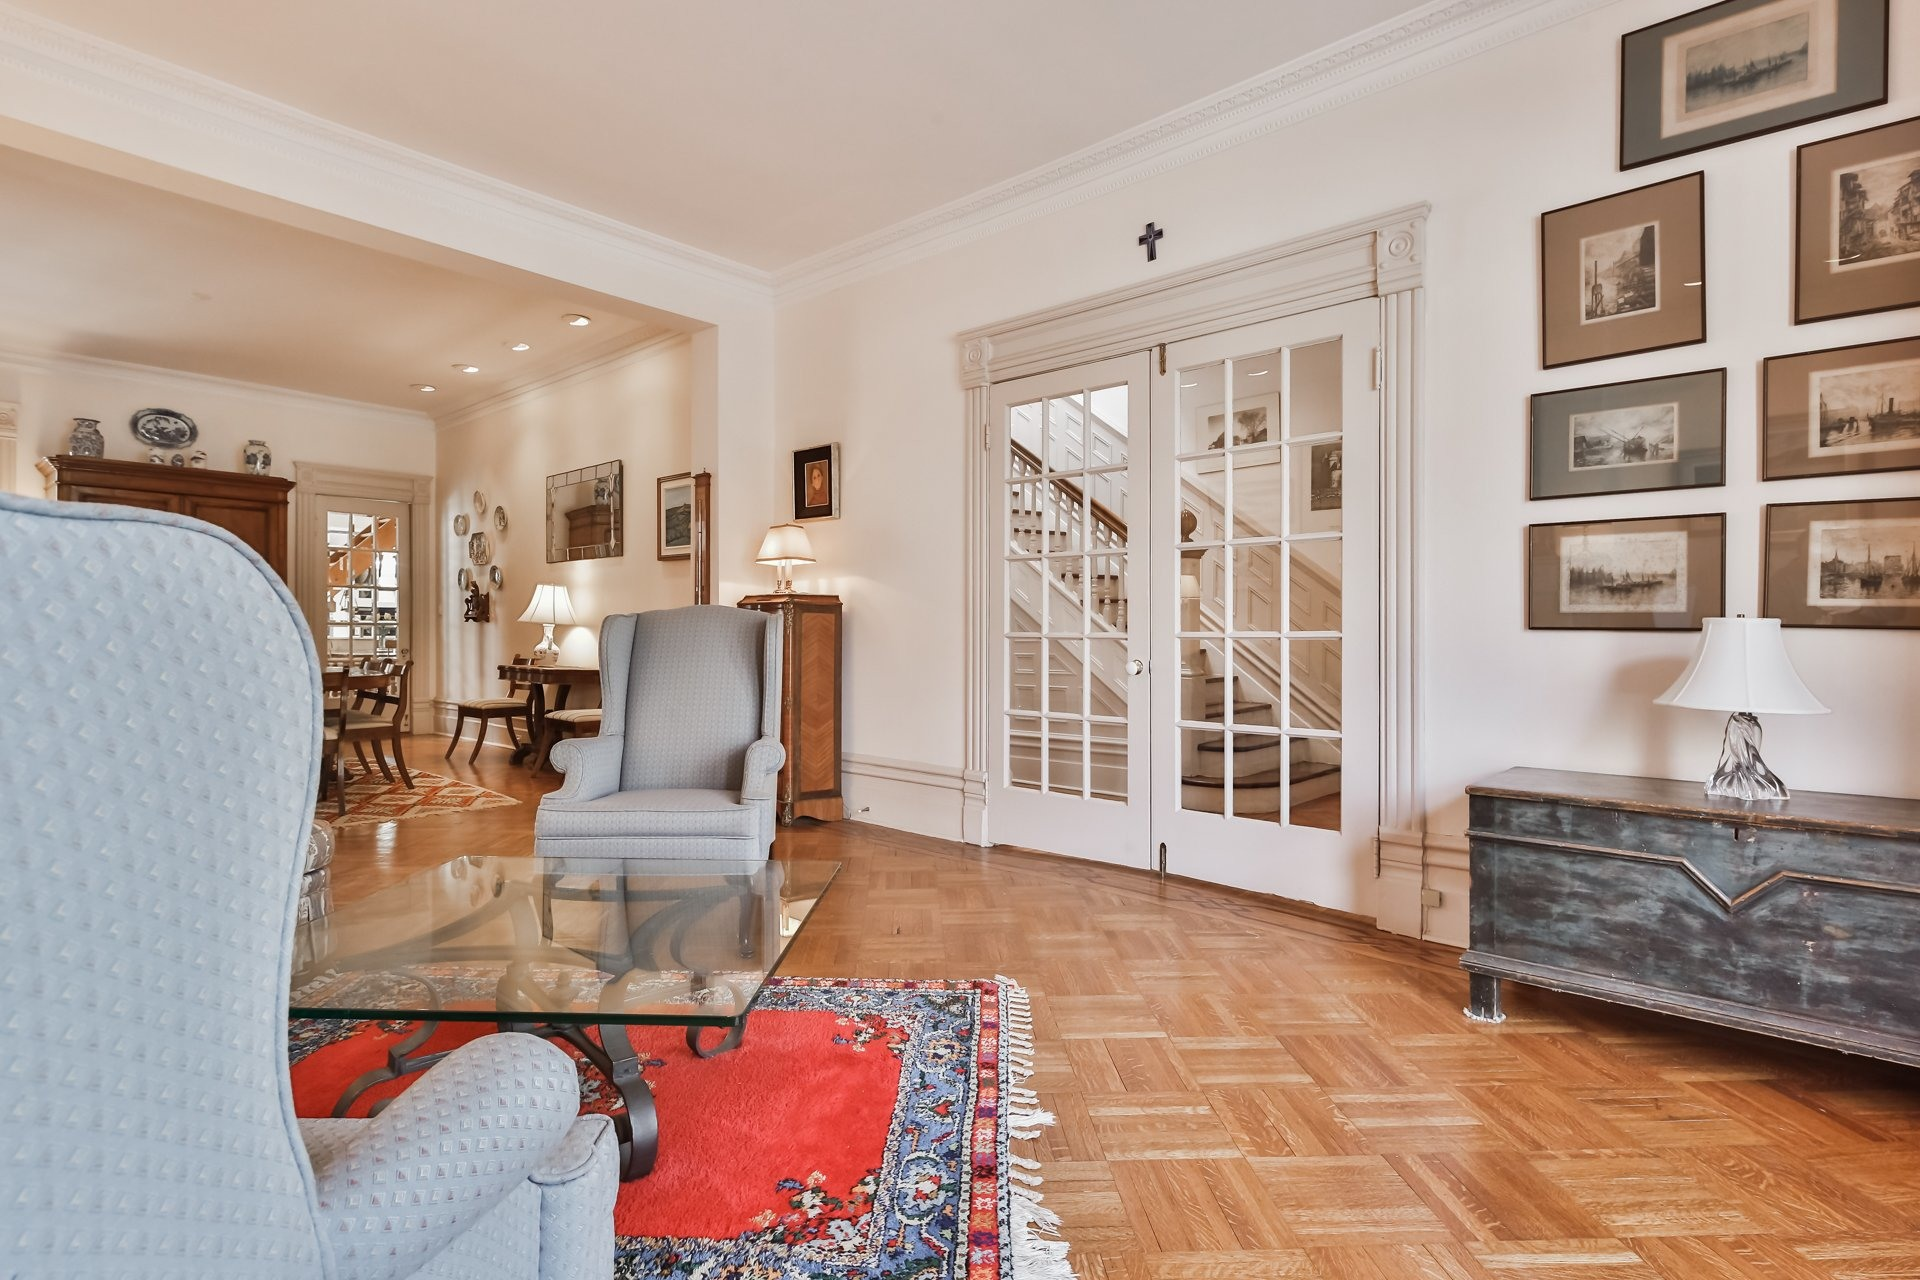 image 3 - House For sale Westmount - 12 rooms